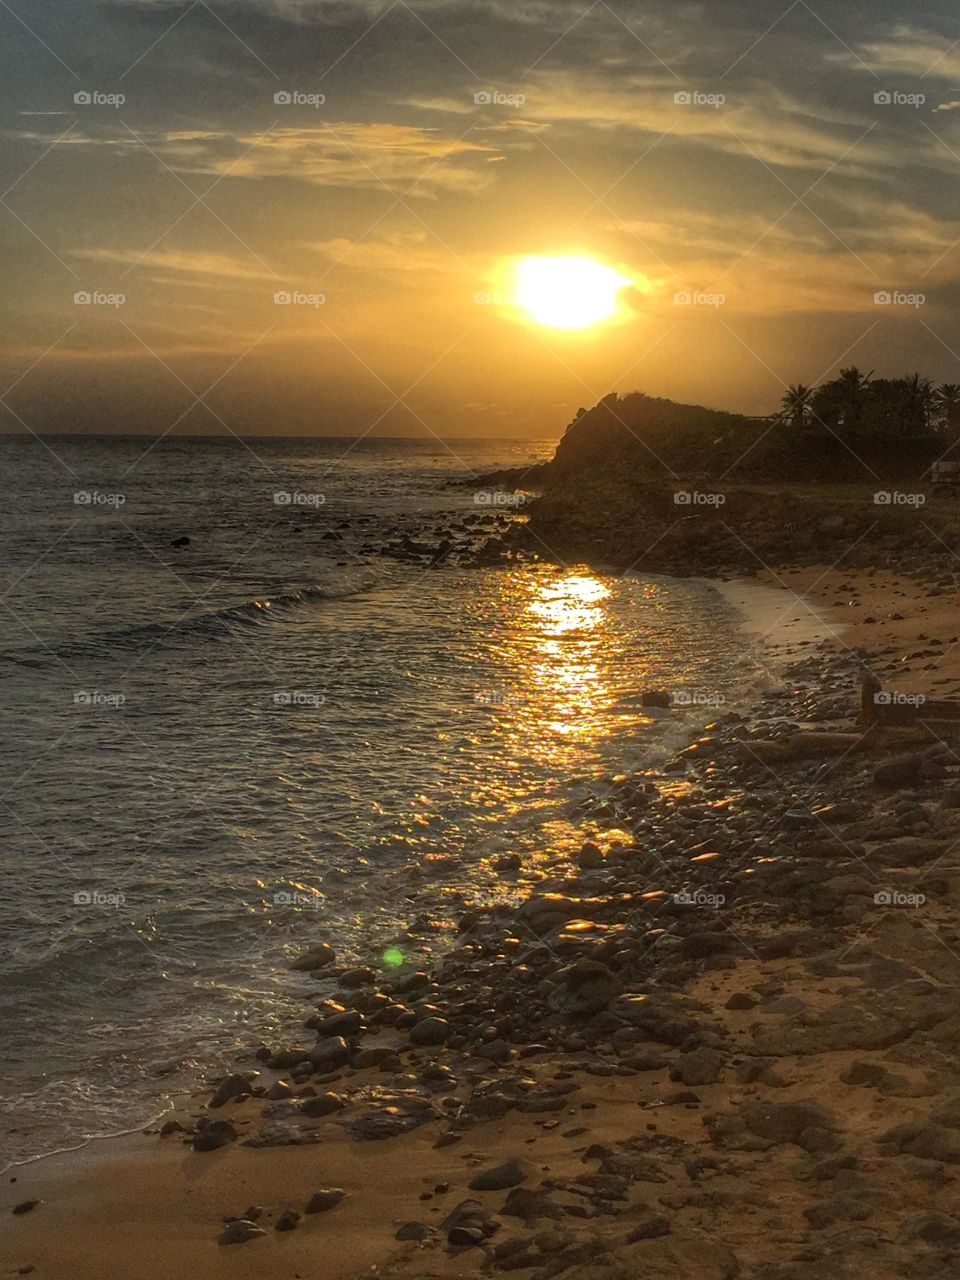 Sunset at Ngor, Senegal. Watching the sun go down over the beach near Africa's westernmost point.